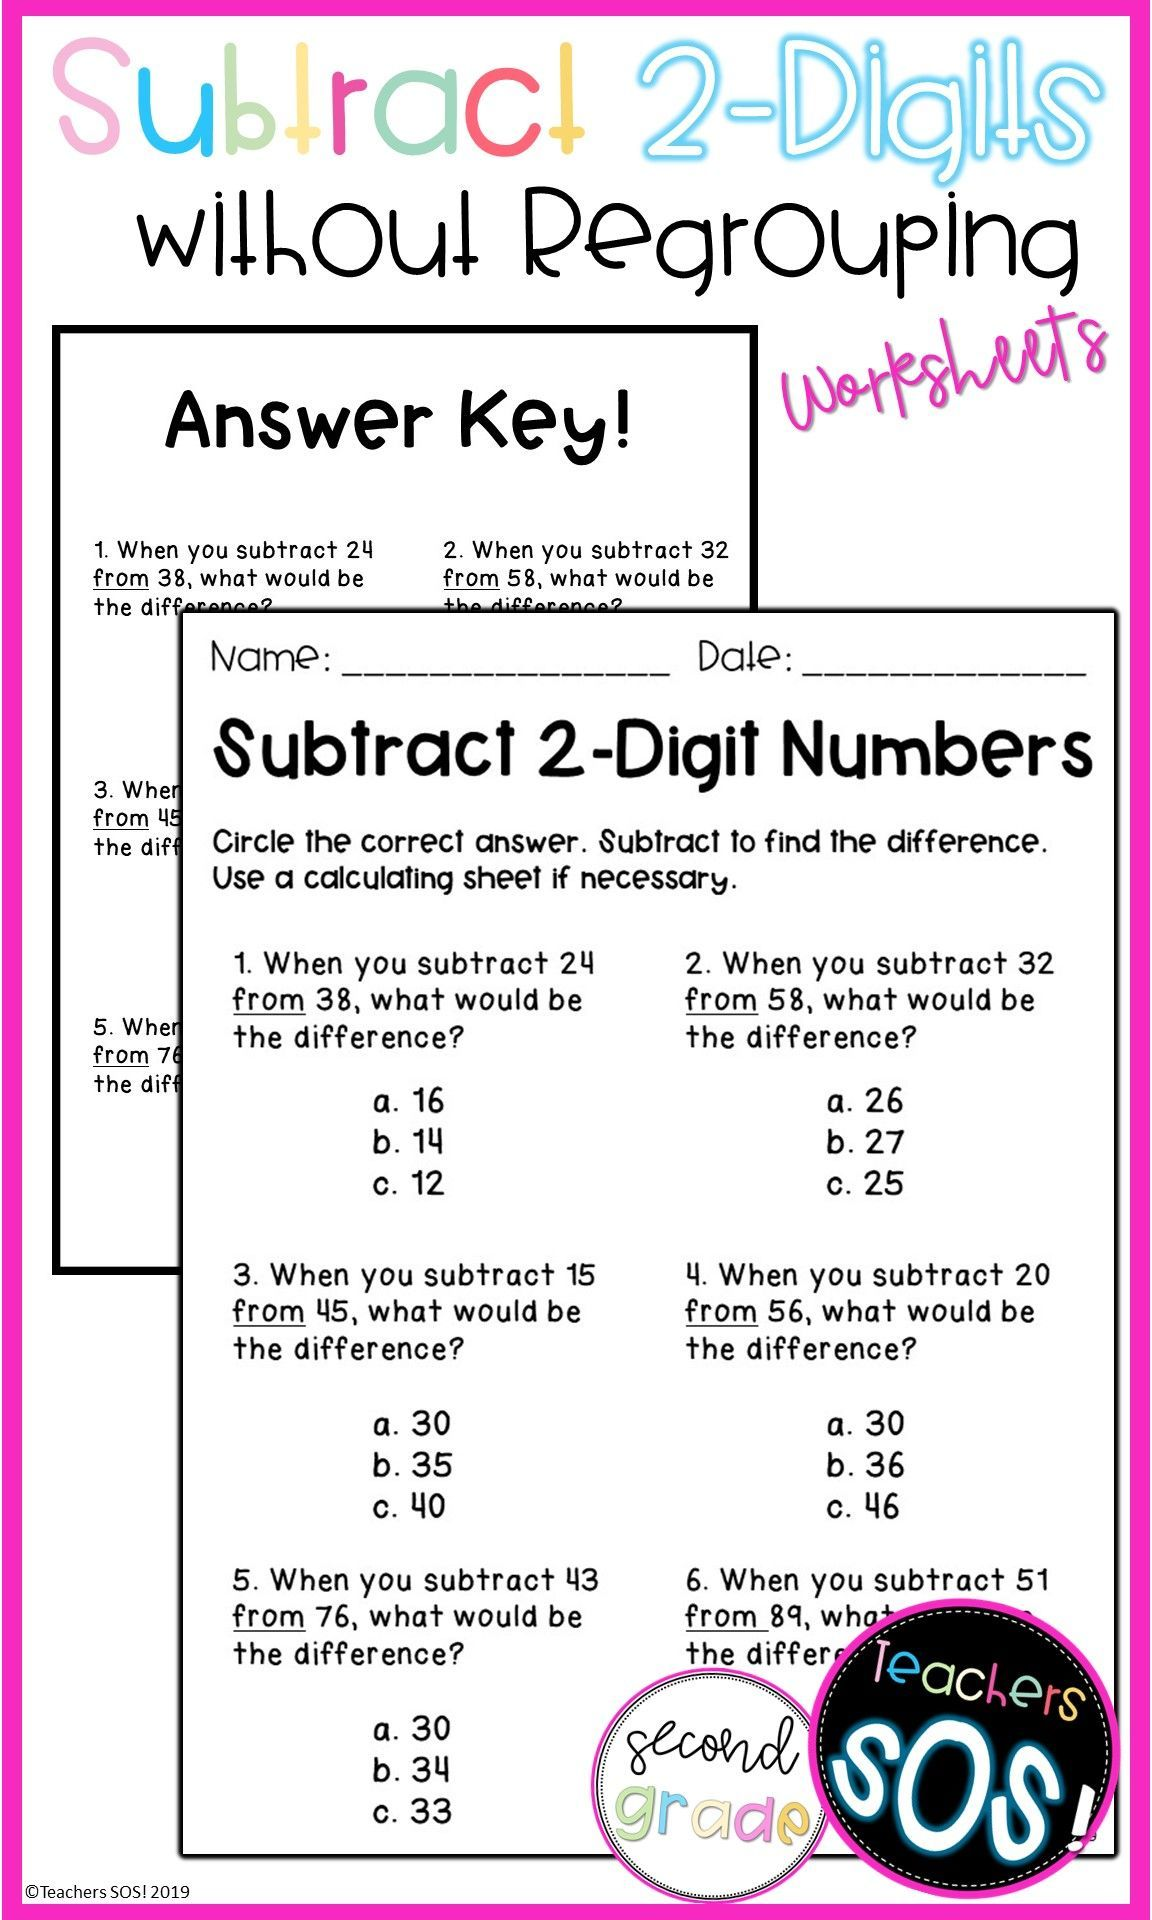 Subtract 2 Digit Numbers Without Regrouping Worksheet